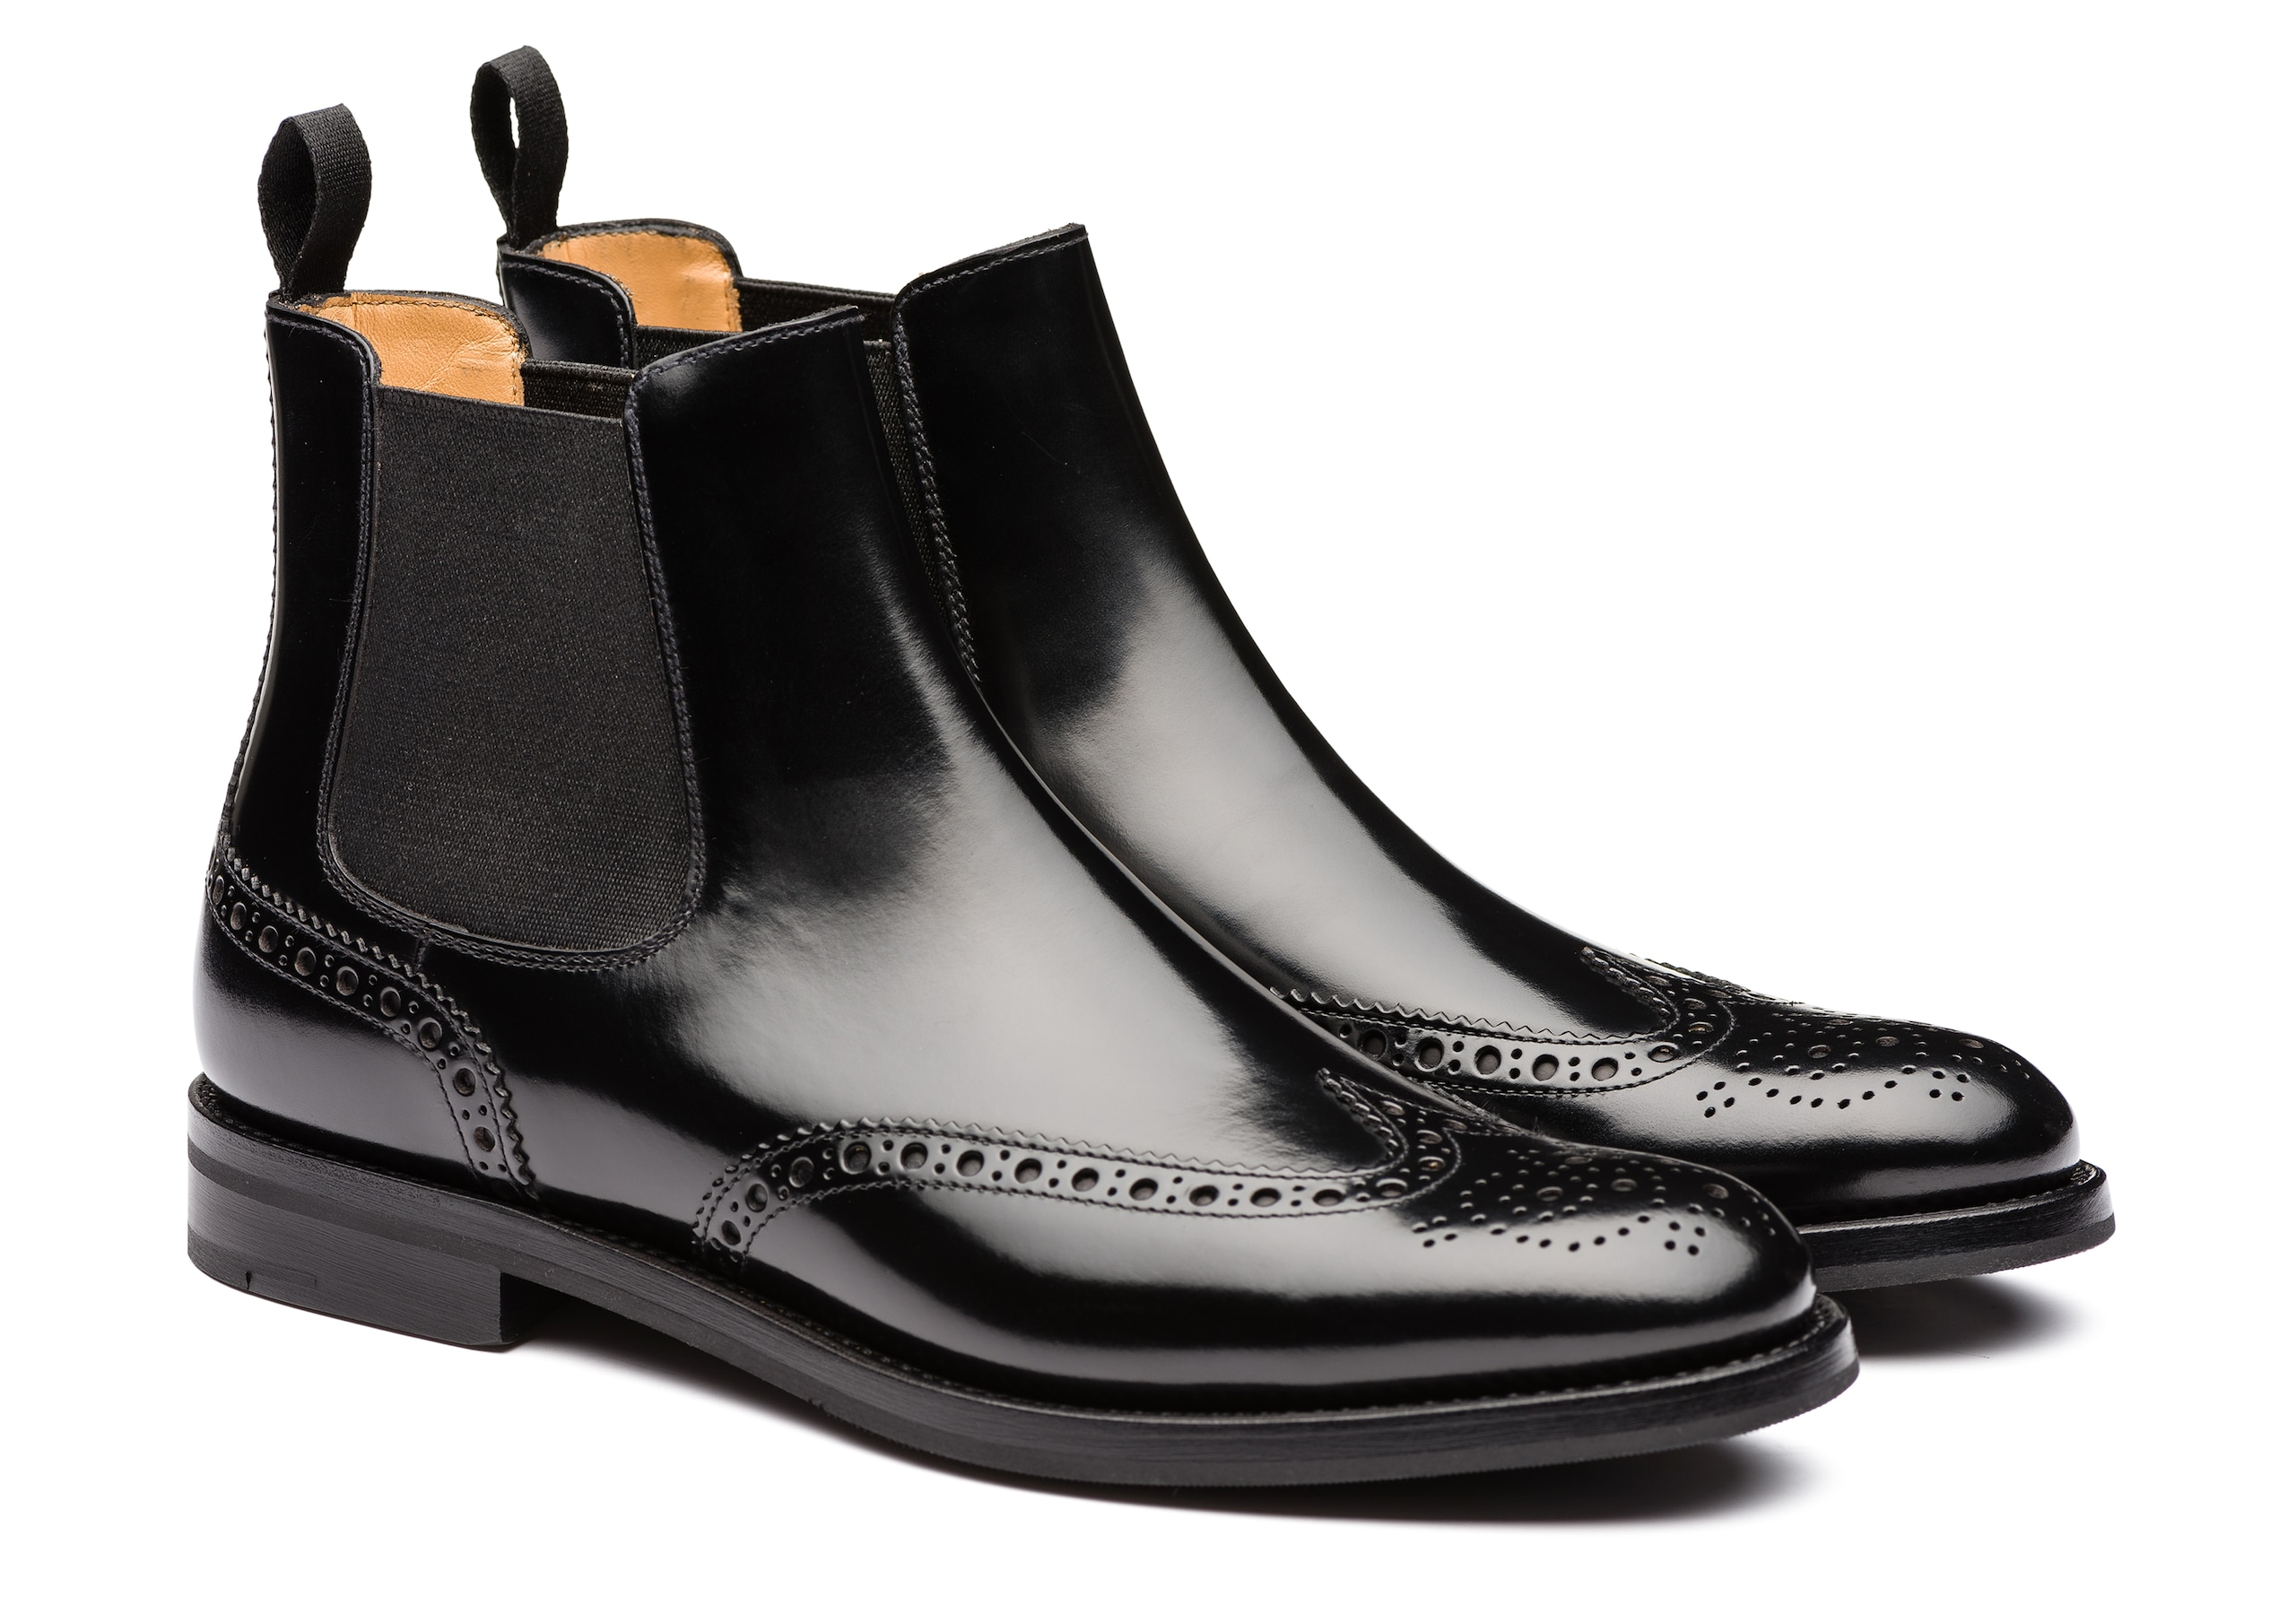 Ketsby wg Church's Polished Binder Brogue Chelsea Boot Black